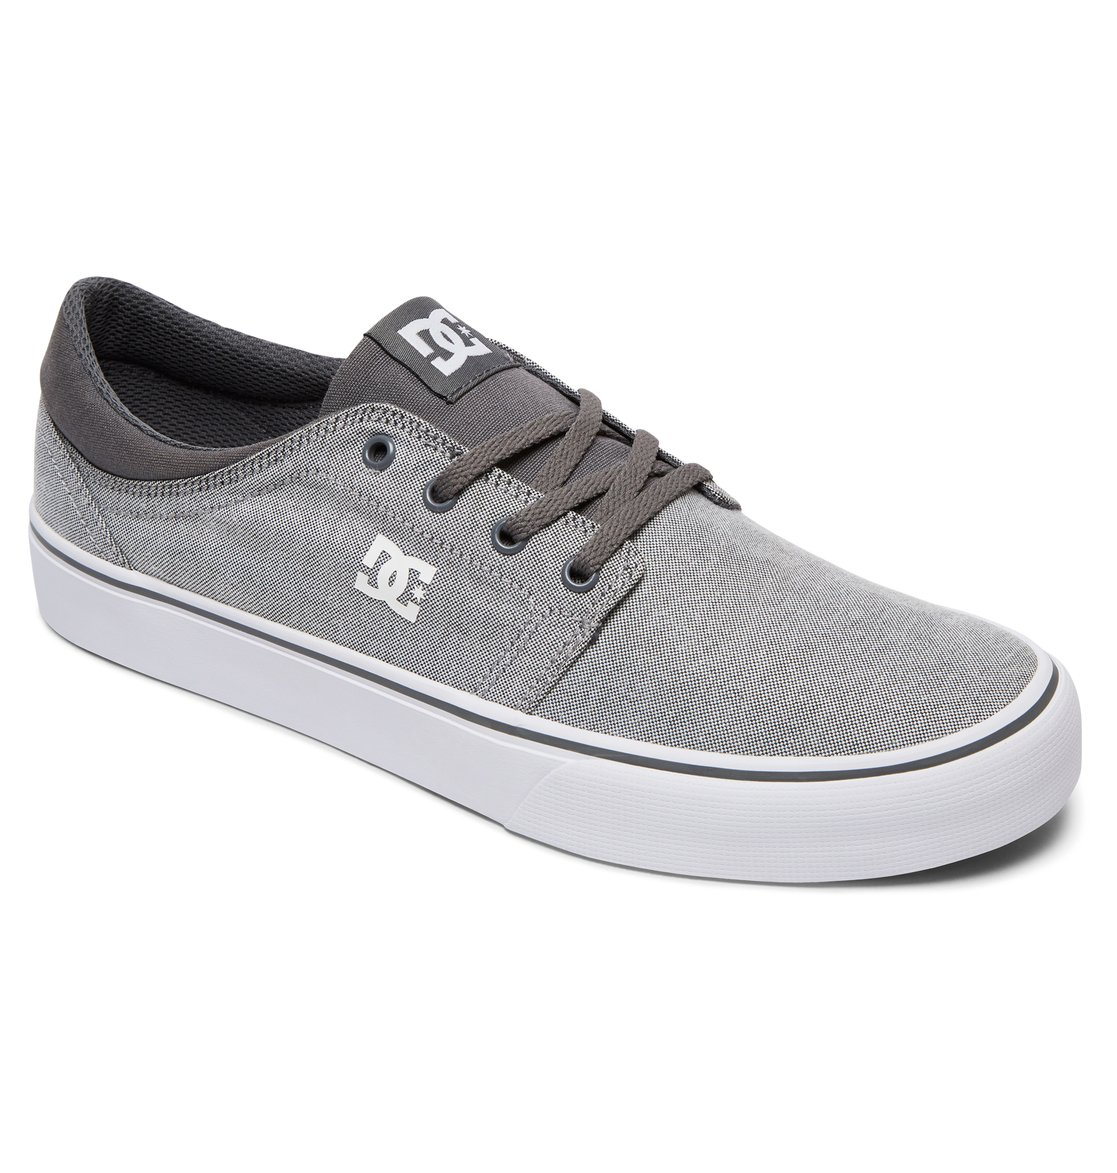 DC Shoes Chaussure DC Trase S Gris (EU 40.5/US 8, Gris)